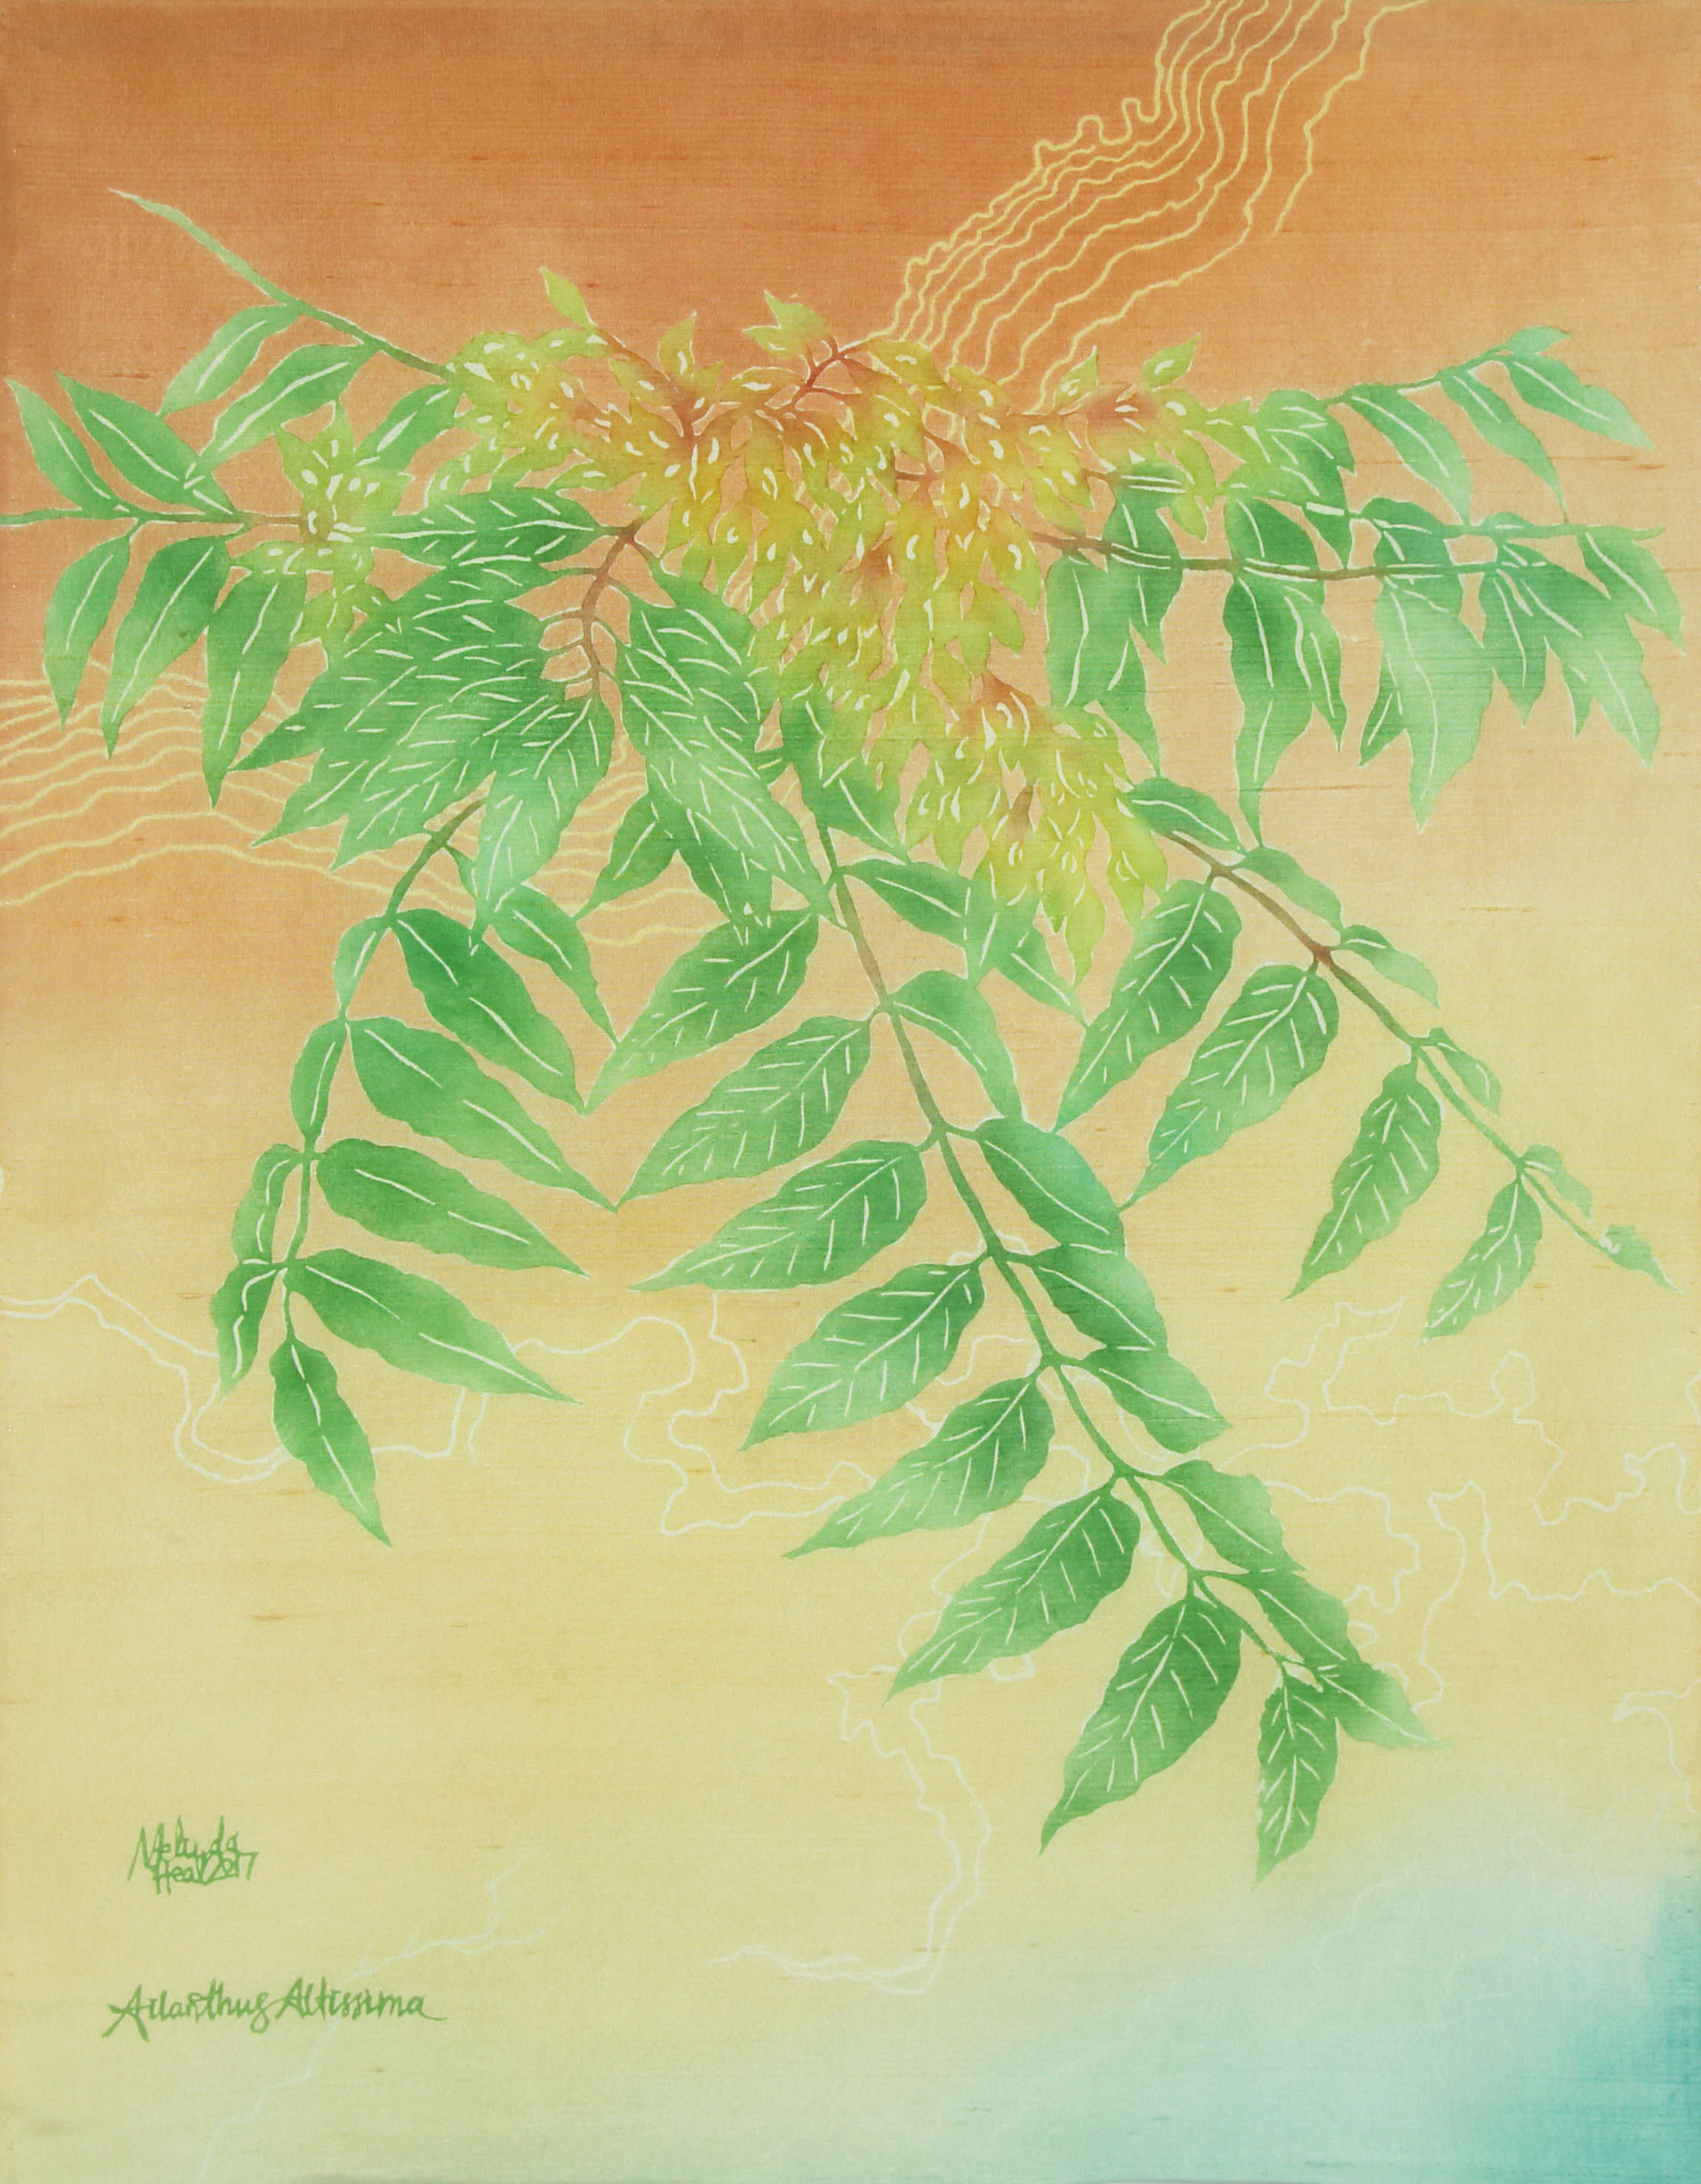 Tree of Heaven - My Weeds are Your Weeds Series - katazome and yuzen on silk dupion, 2017